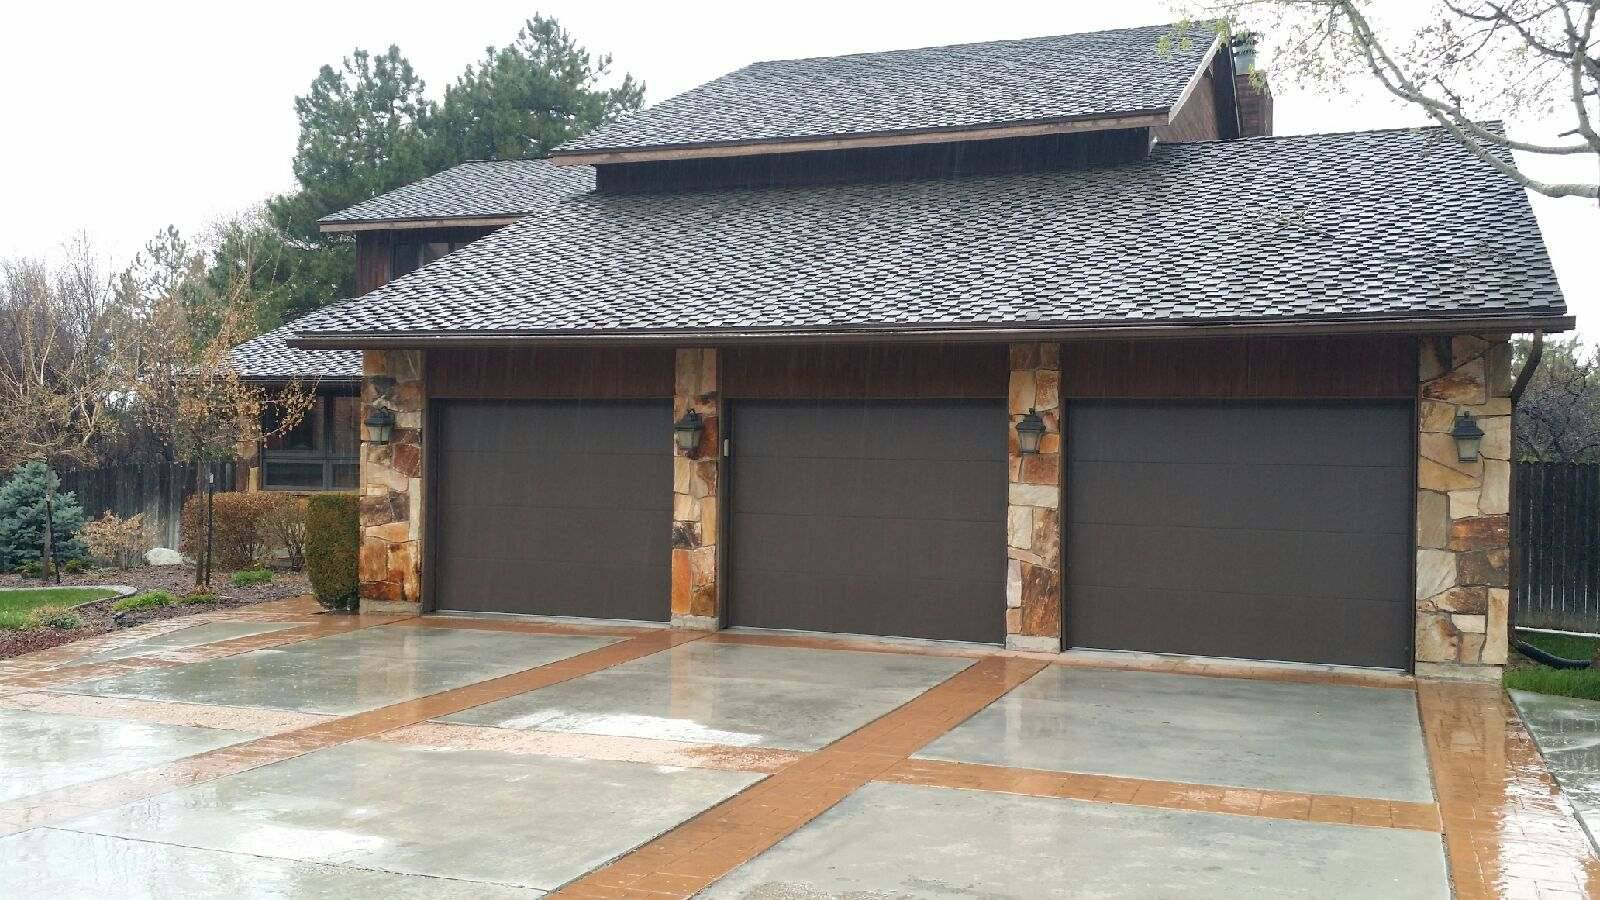 Skyline Flush Garage Door - Residential Garage Door - Garage Door Services, Inc.